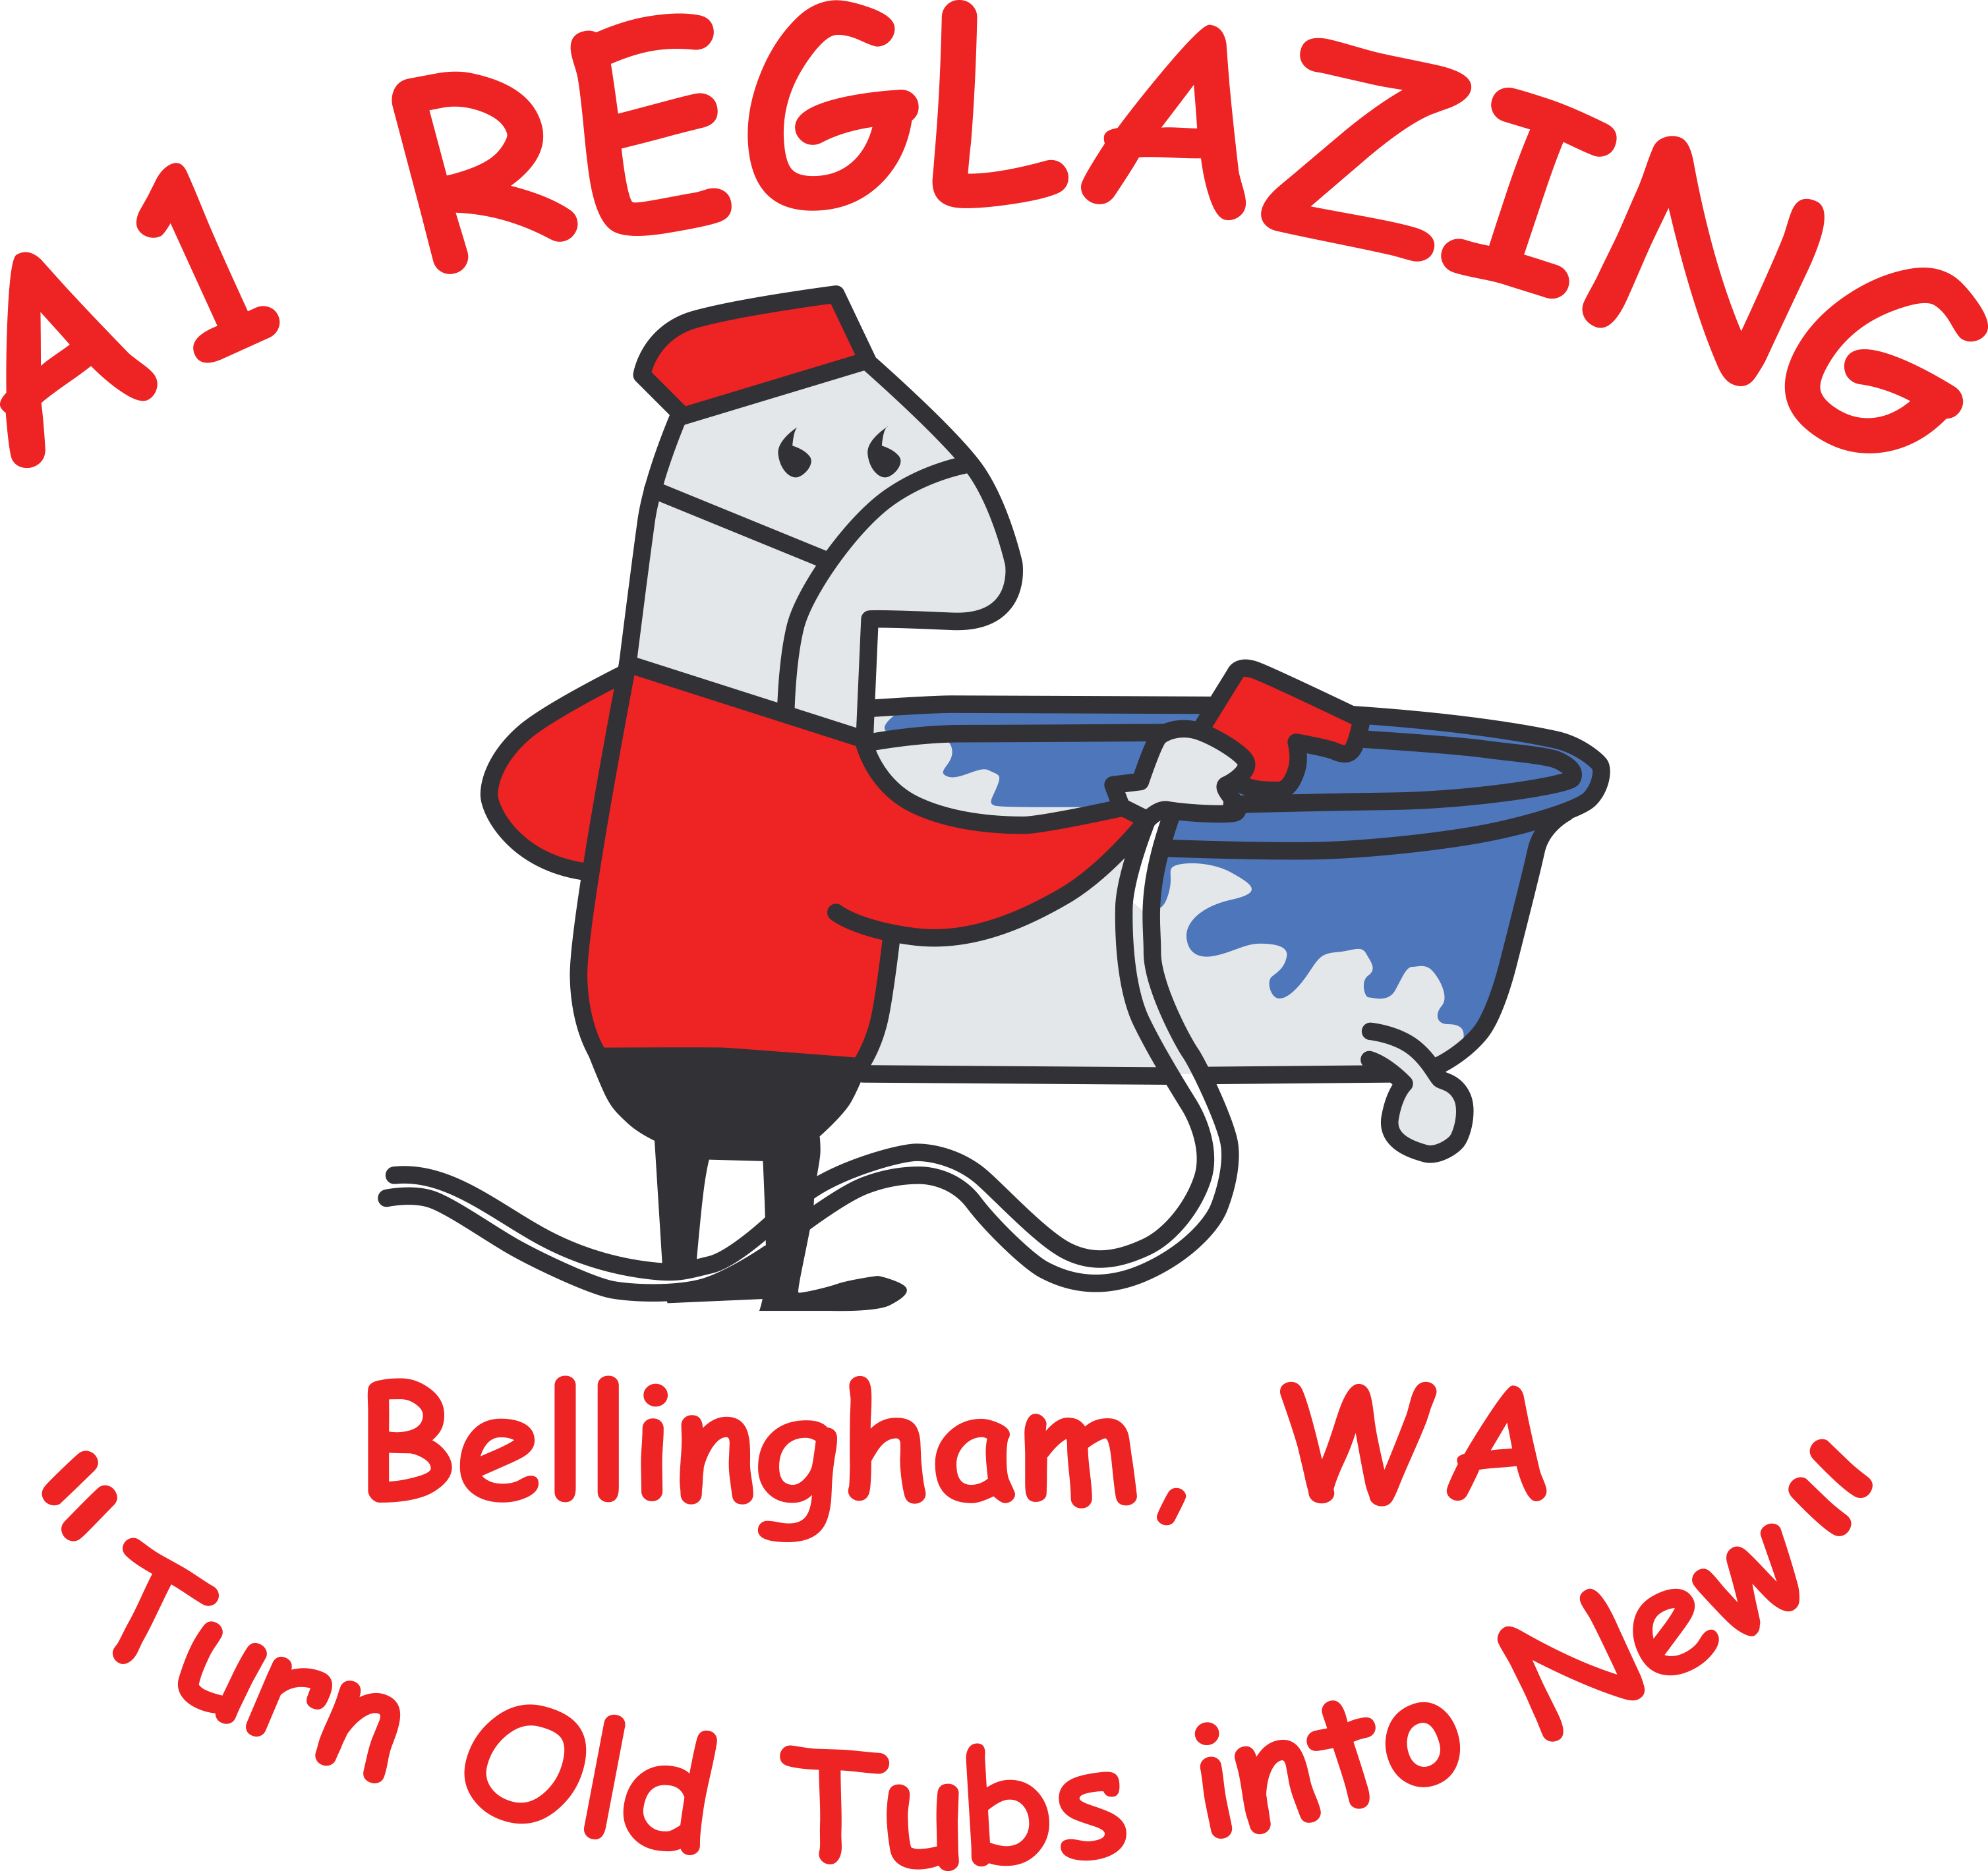 A1 Reglazing | Bellingham, WA | Bathtub Refinishing